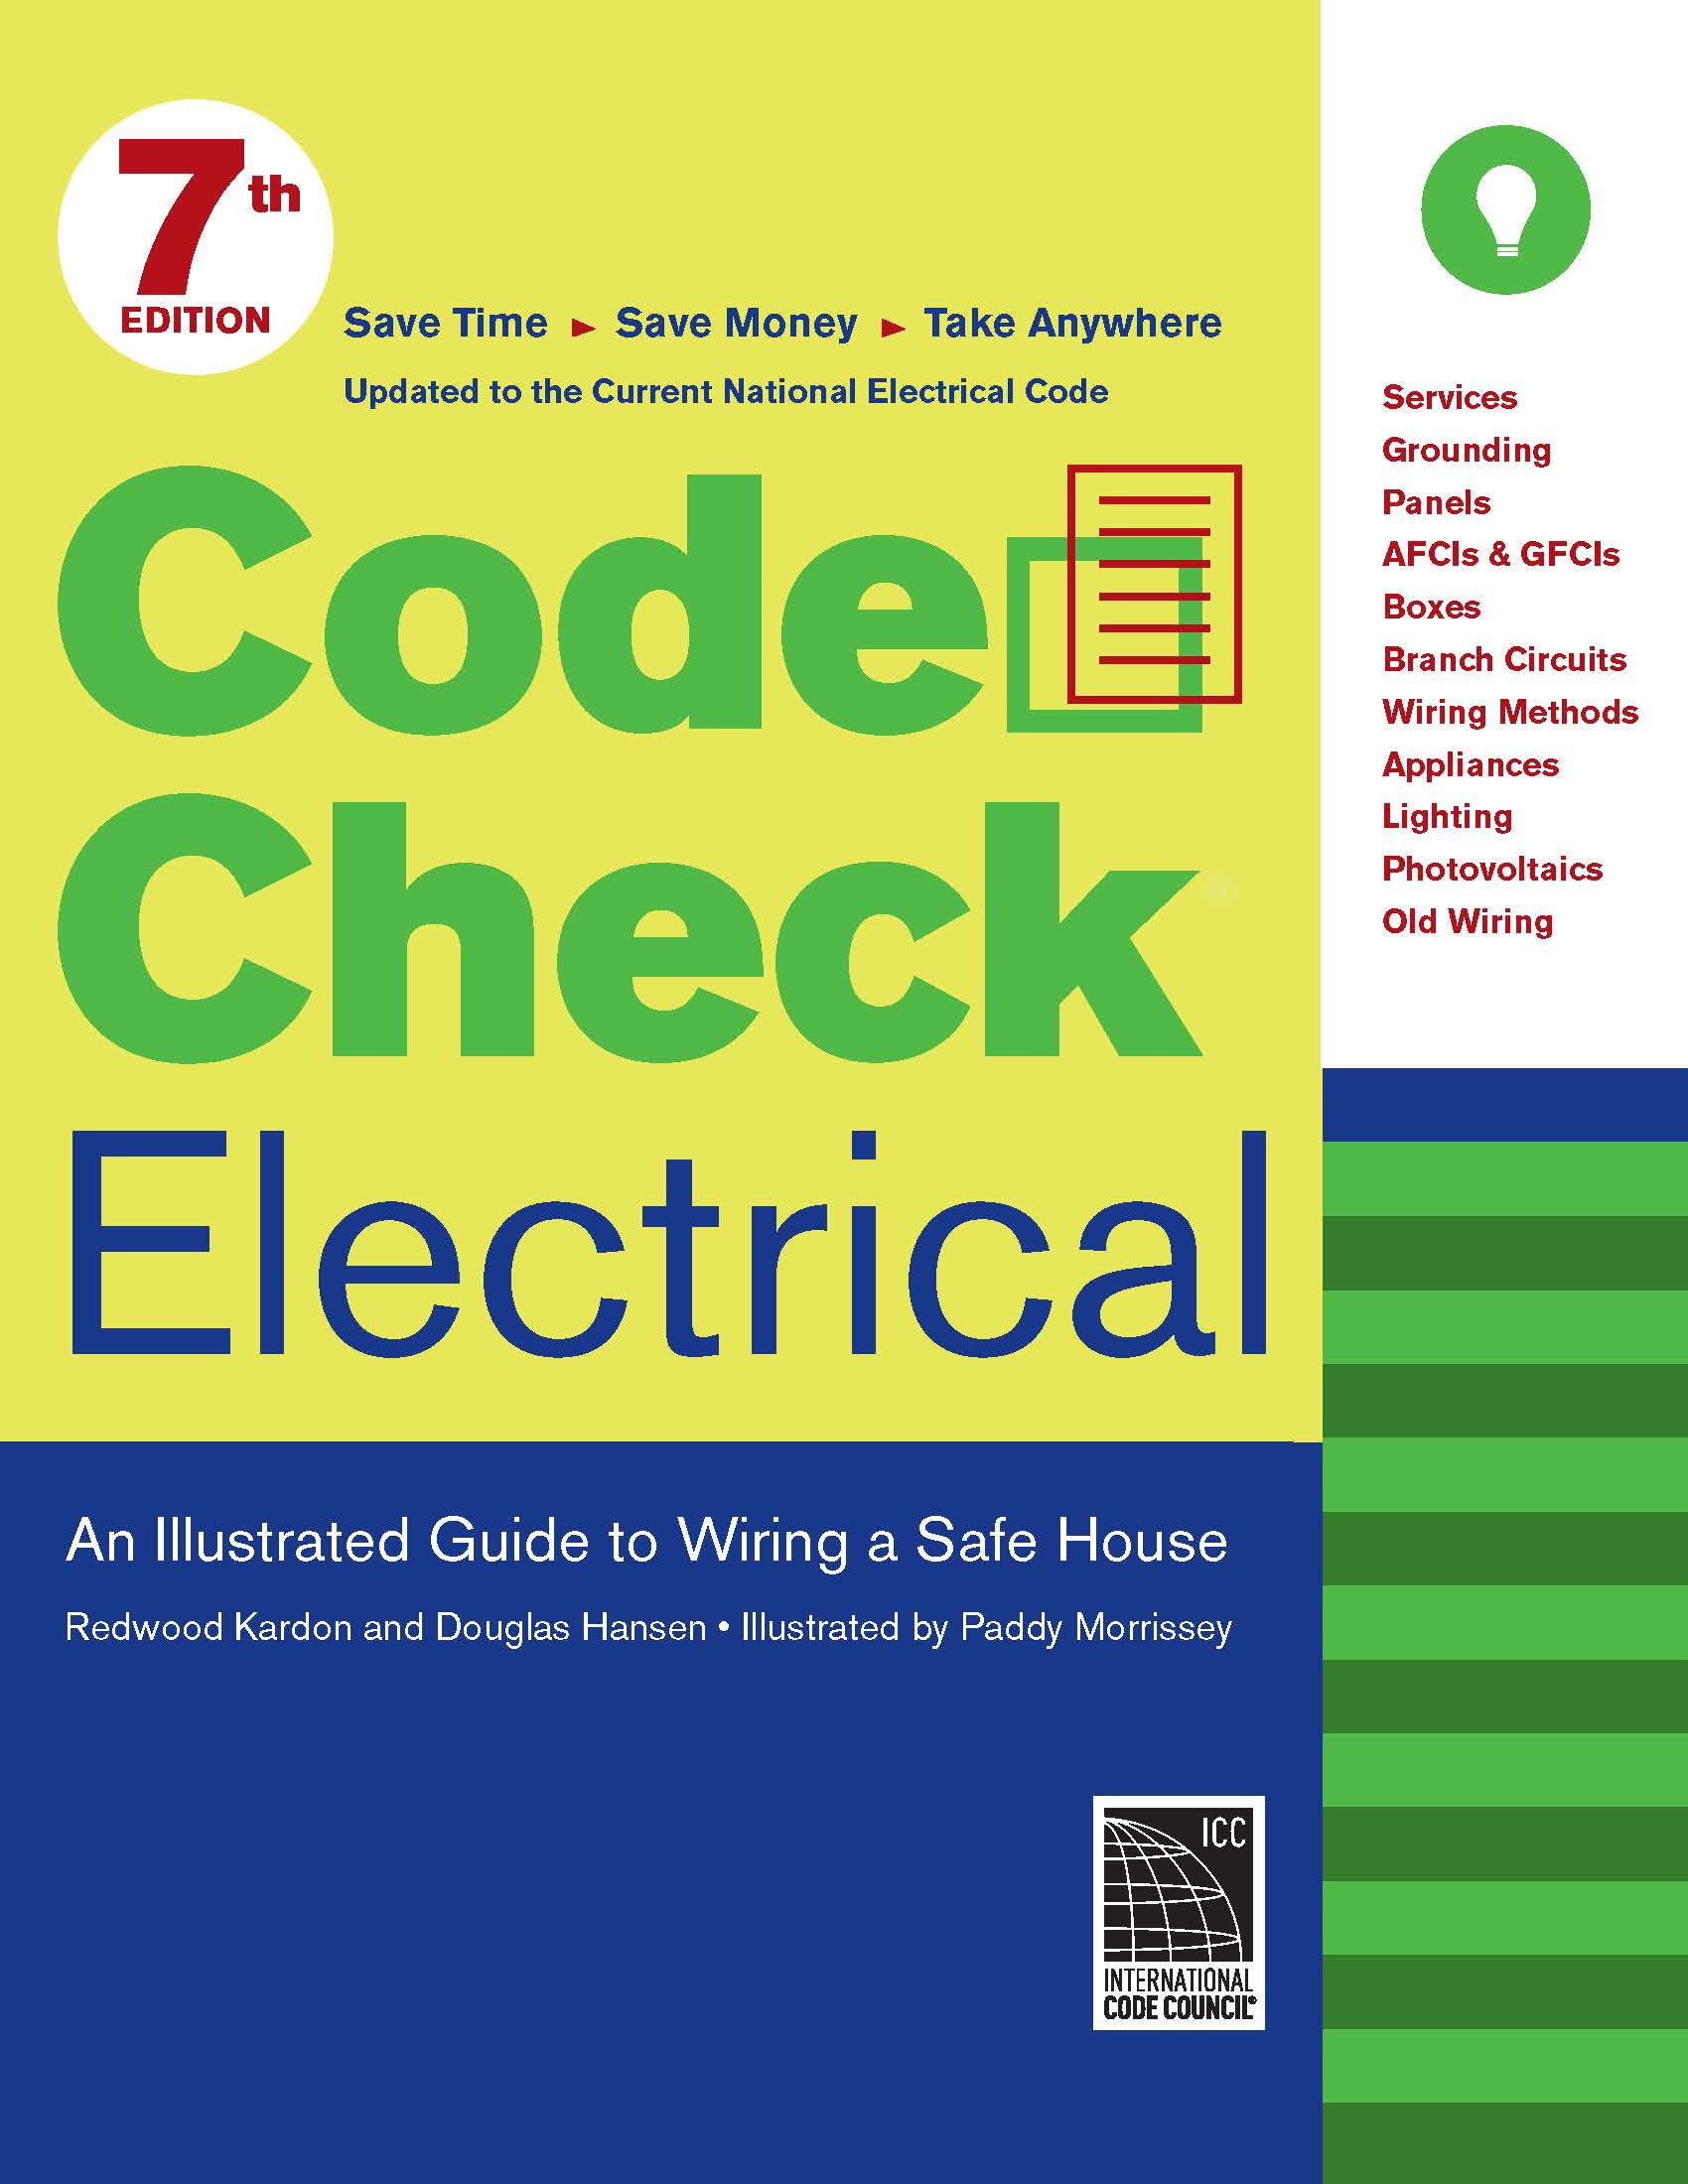 How To Check Electrical Wiring